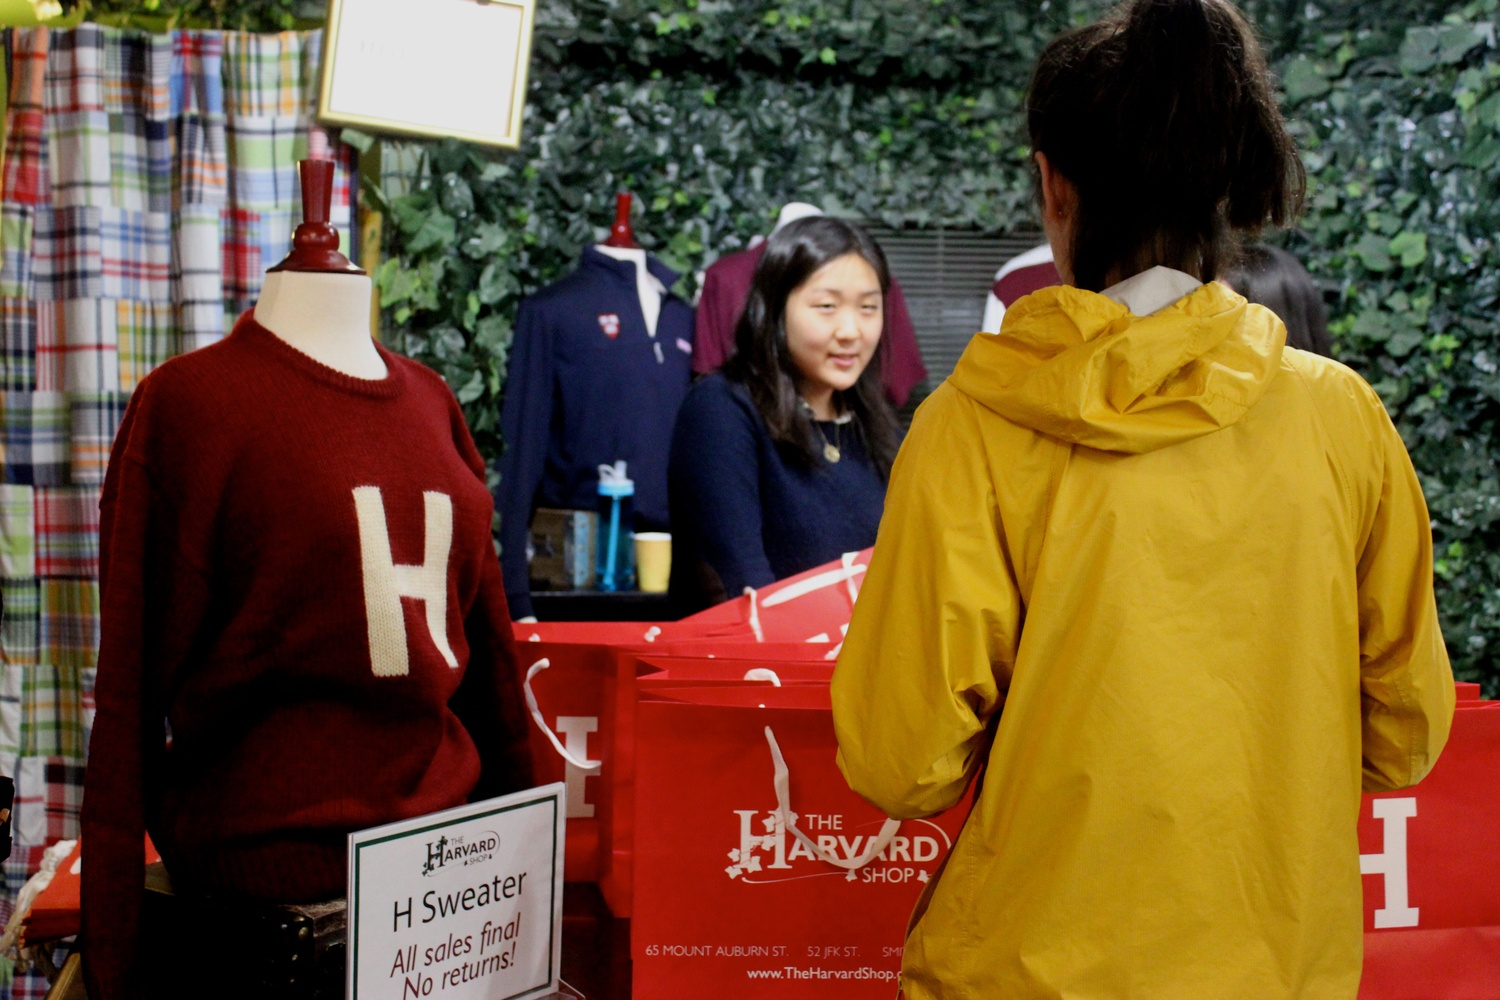 Diana Im '17, an employee at HSA's Harvard Shop, prepares to give a student her H sweater at the sweater's release party in late September.